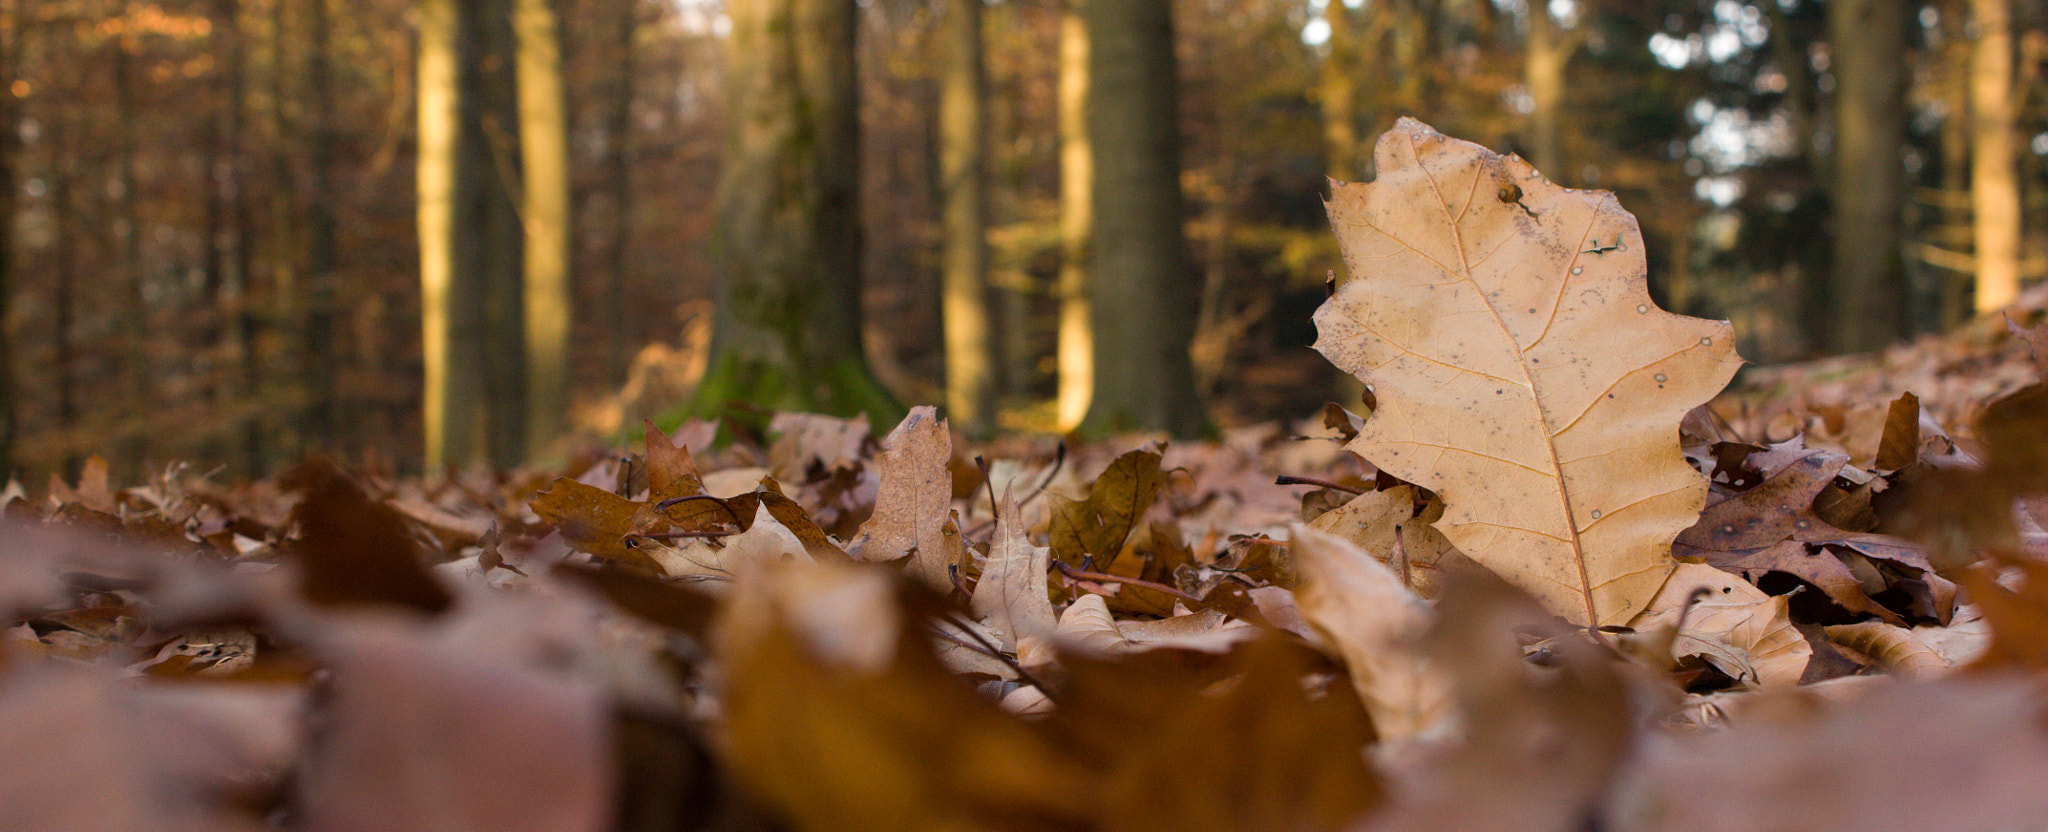 Photograph Autumn Impression by Marco B on 500px